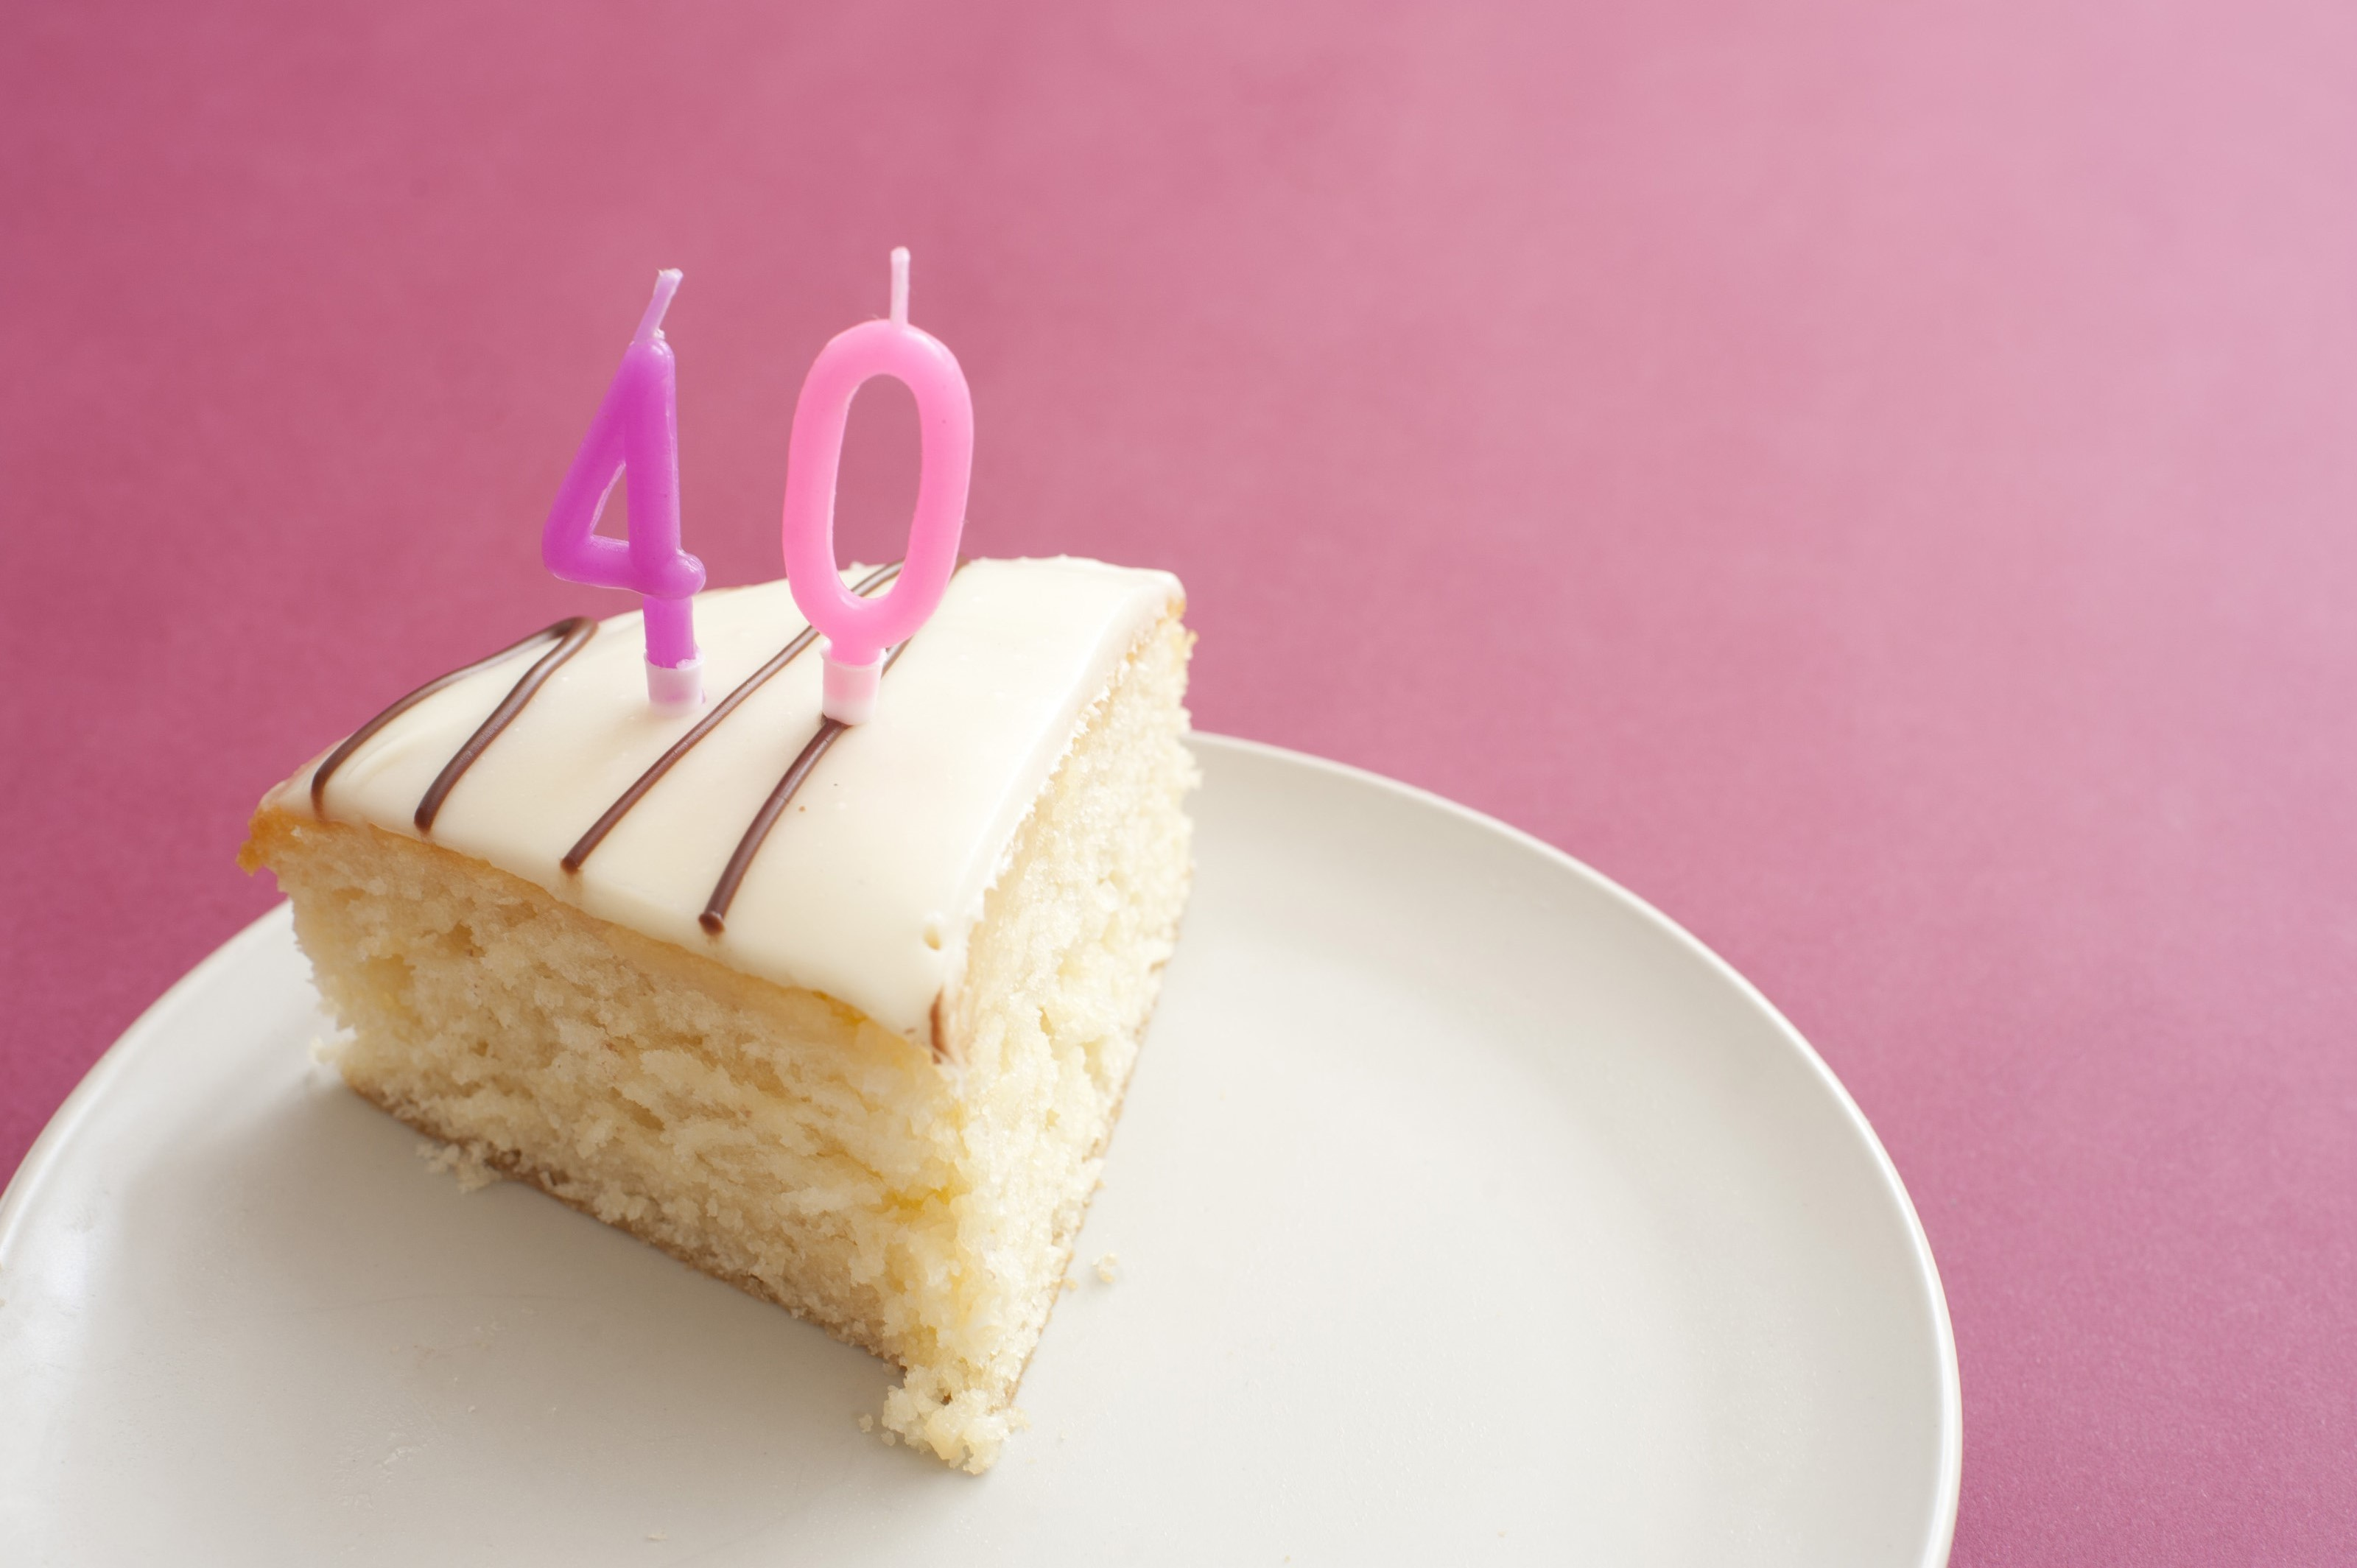 Free Image Of Slice Cake With 40th Birthday Candles